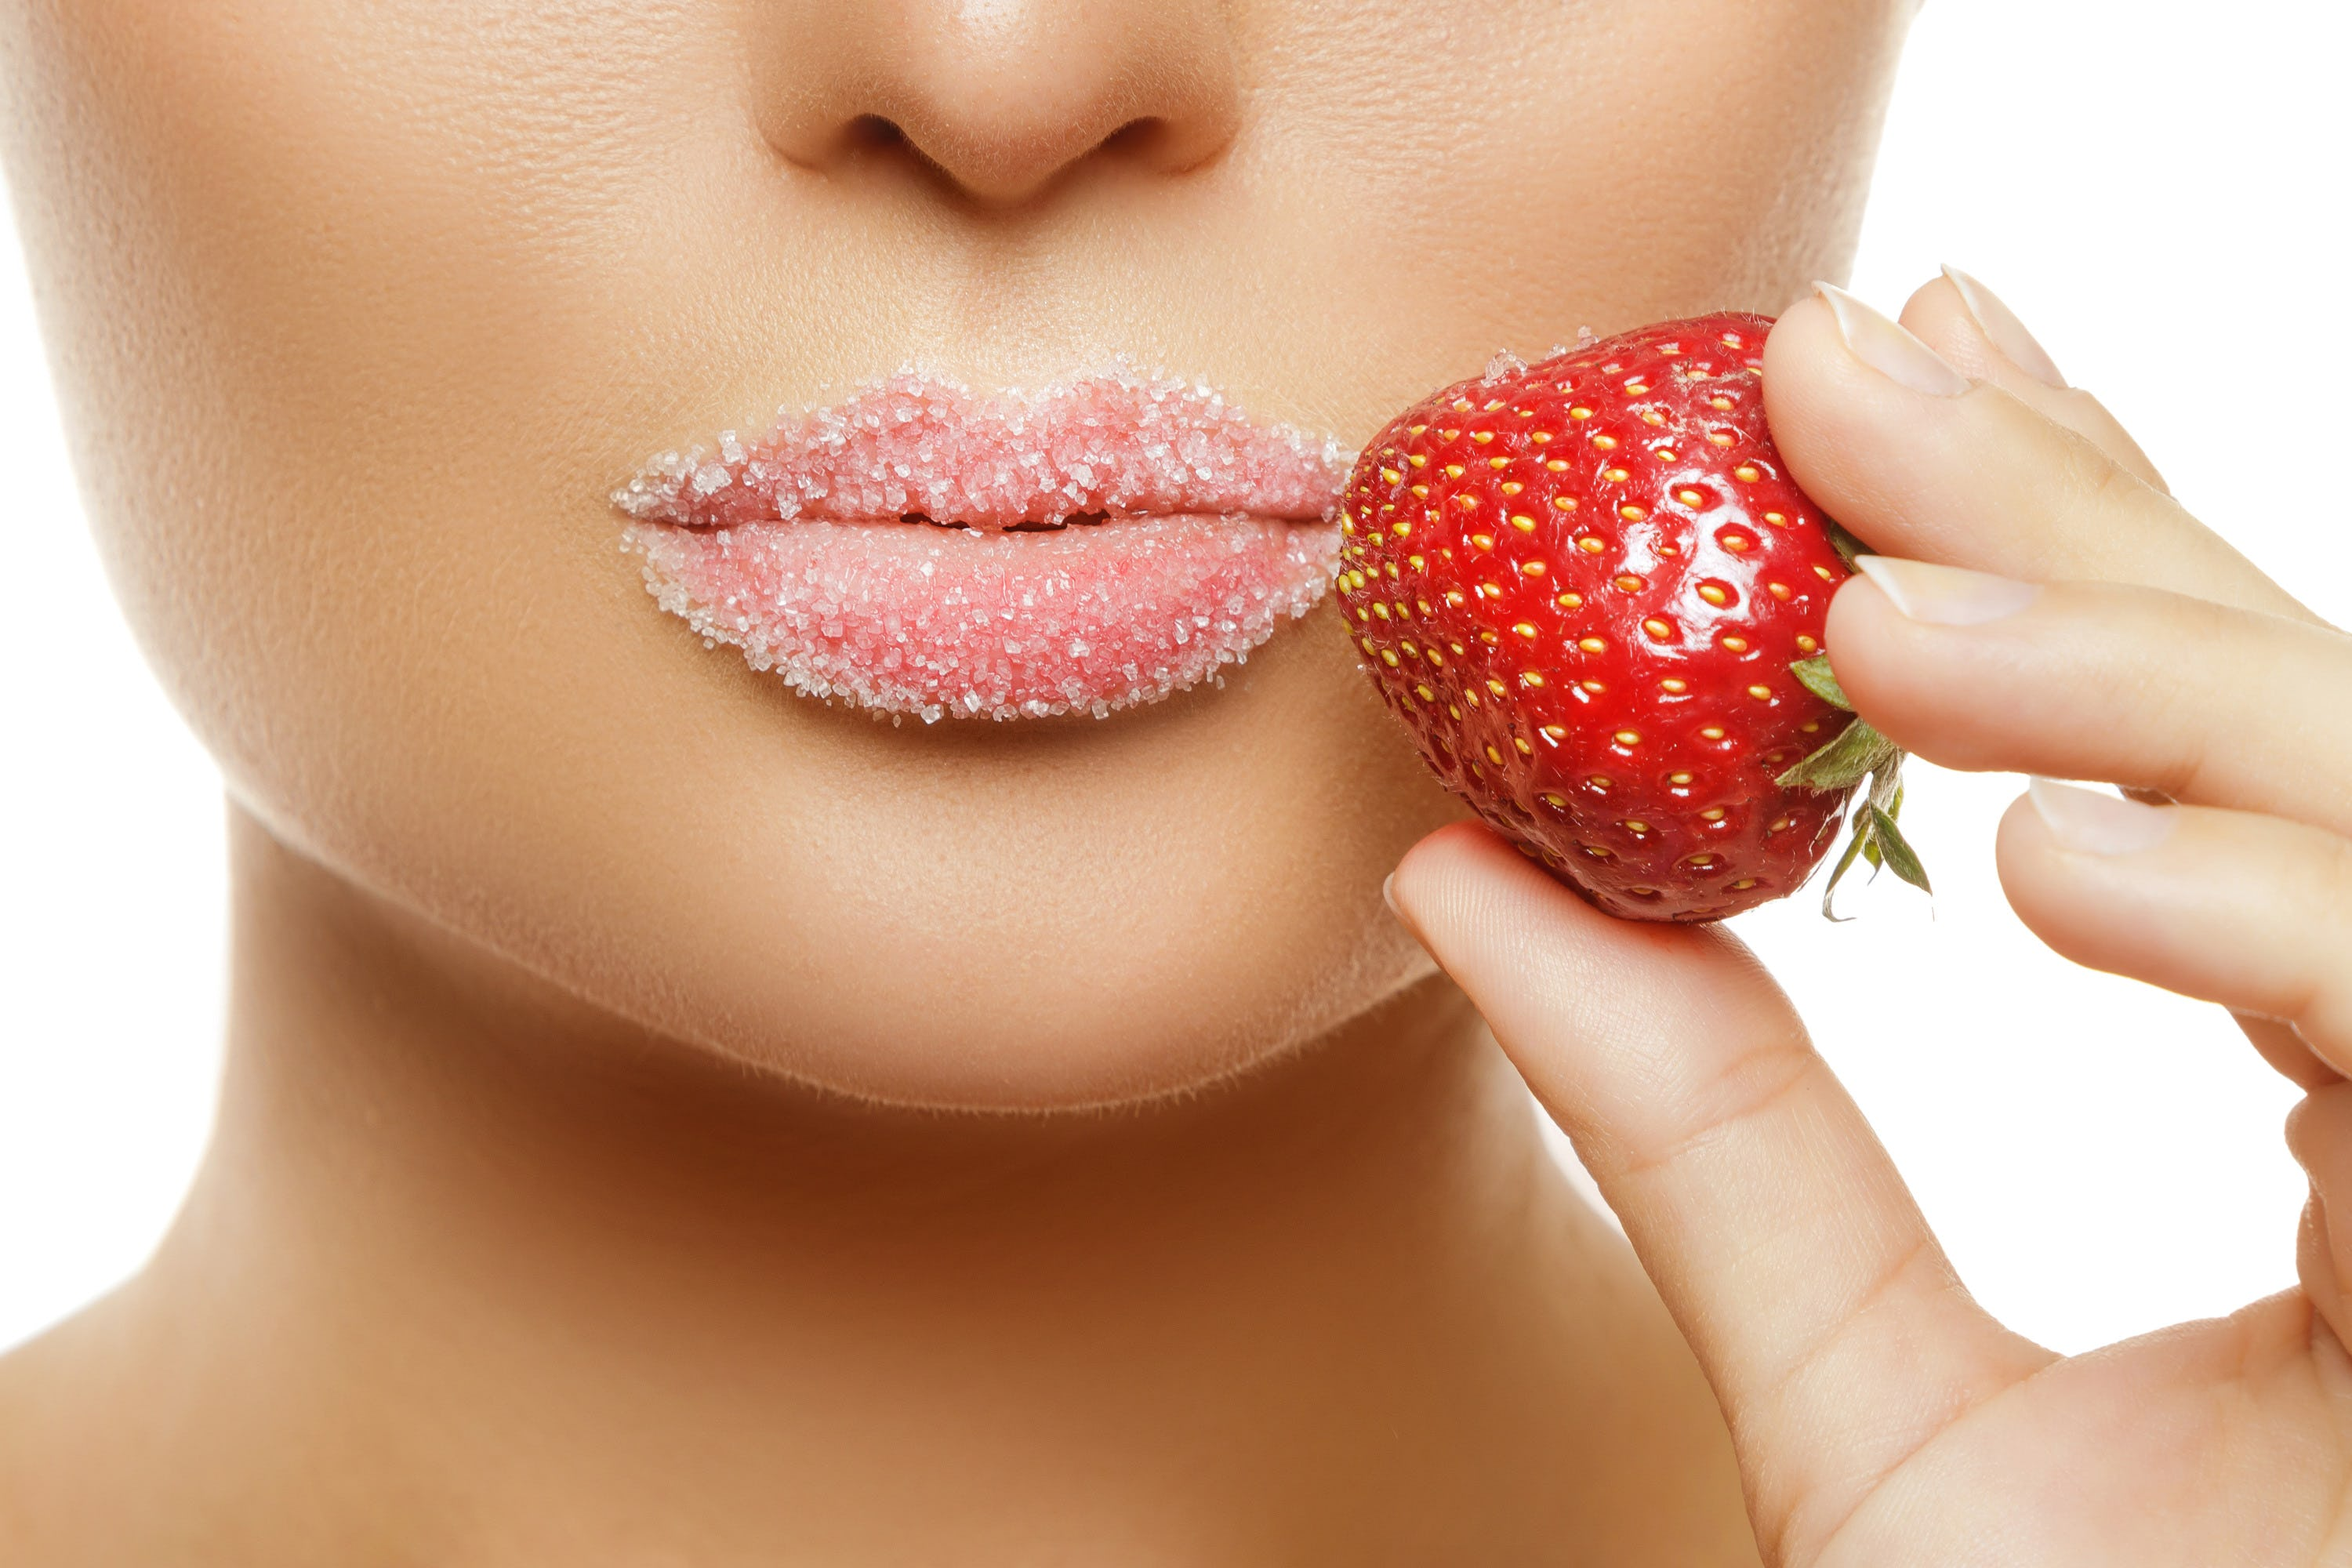 Close-up of lips with sugar and a strawberry